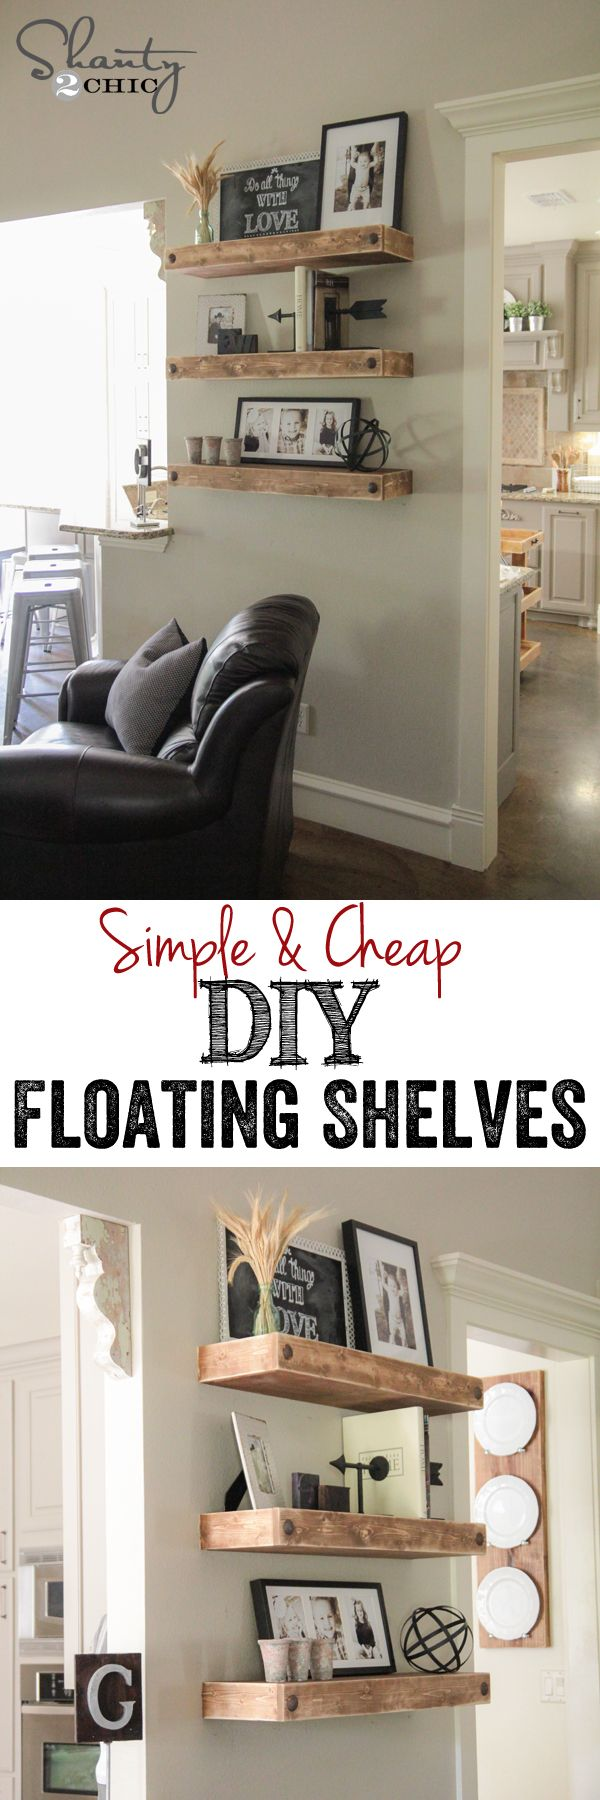 DIY Floating Shelves